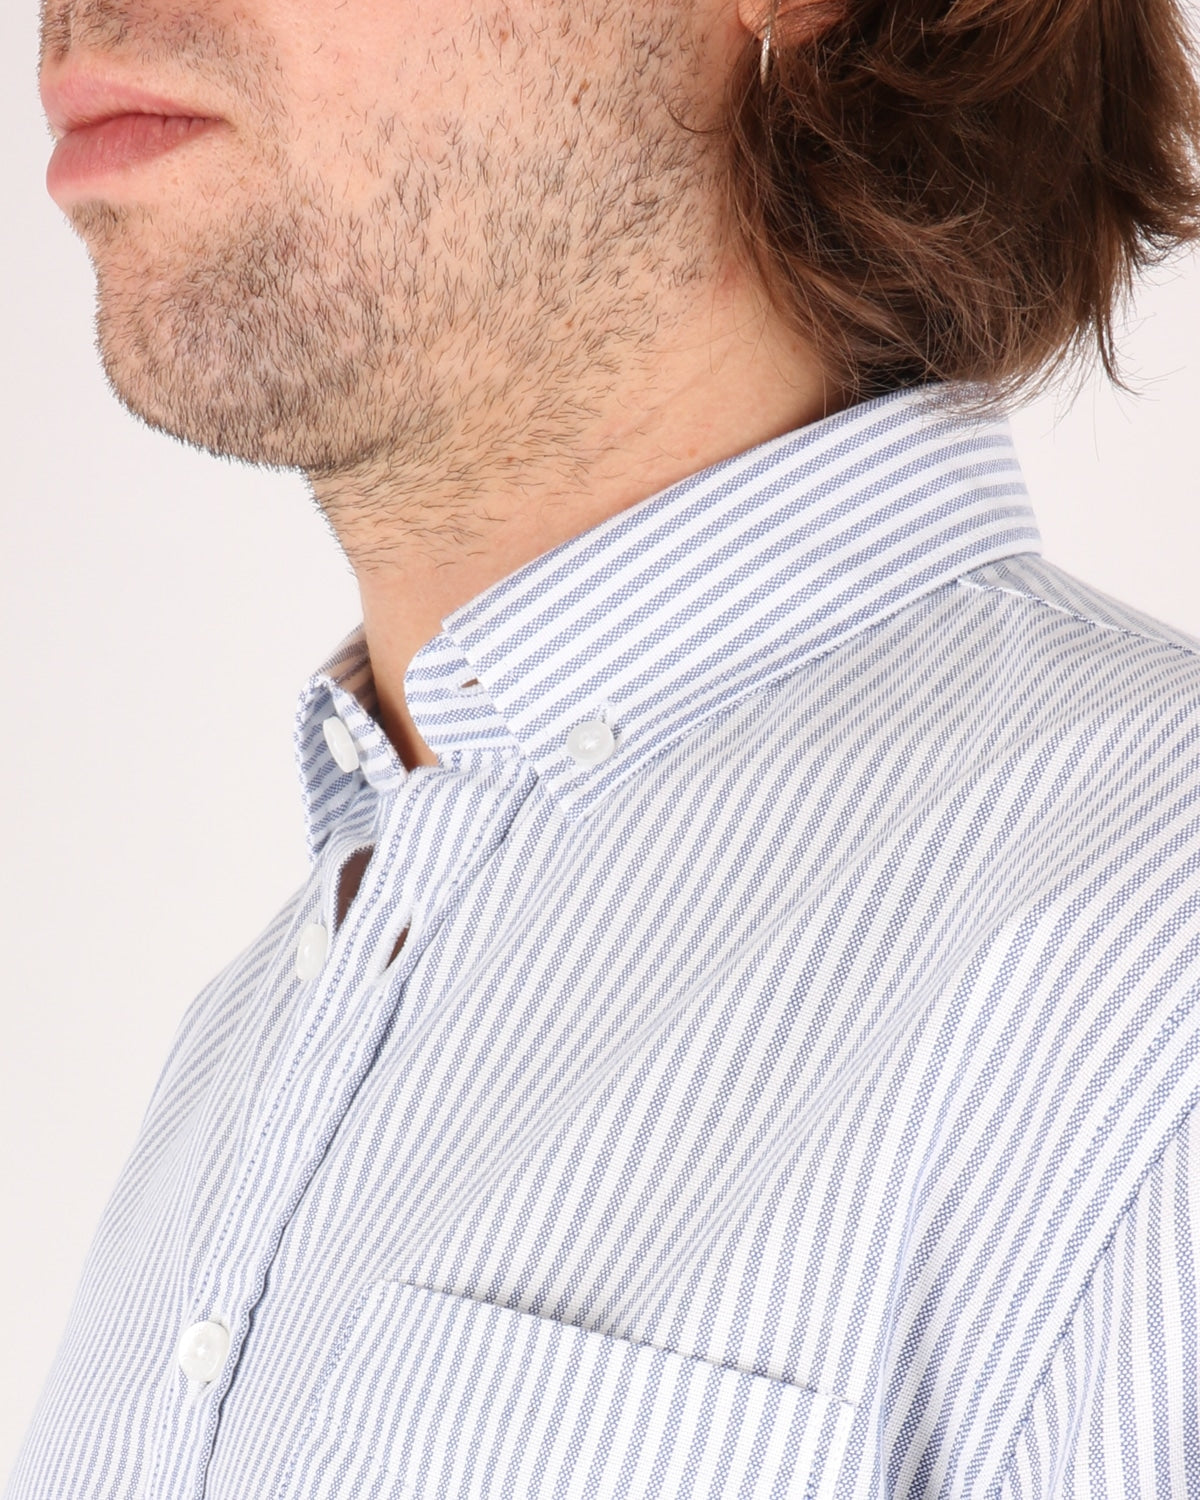 libertine libertine_hunter shirt_white w. blue stripes_3_4